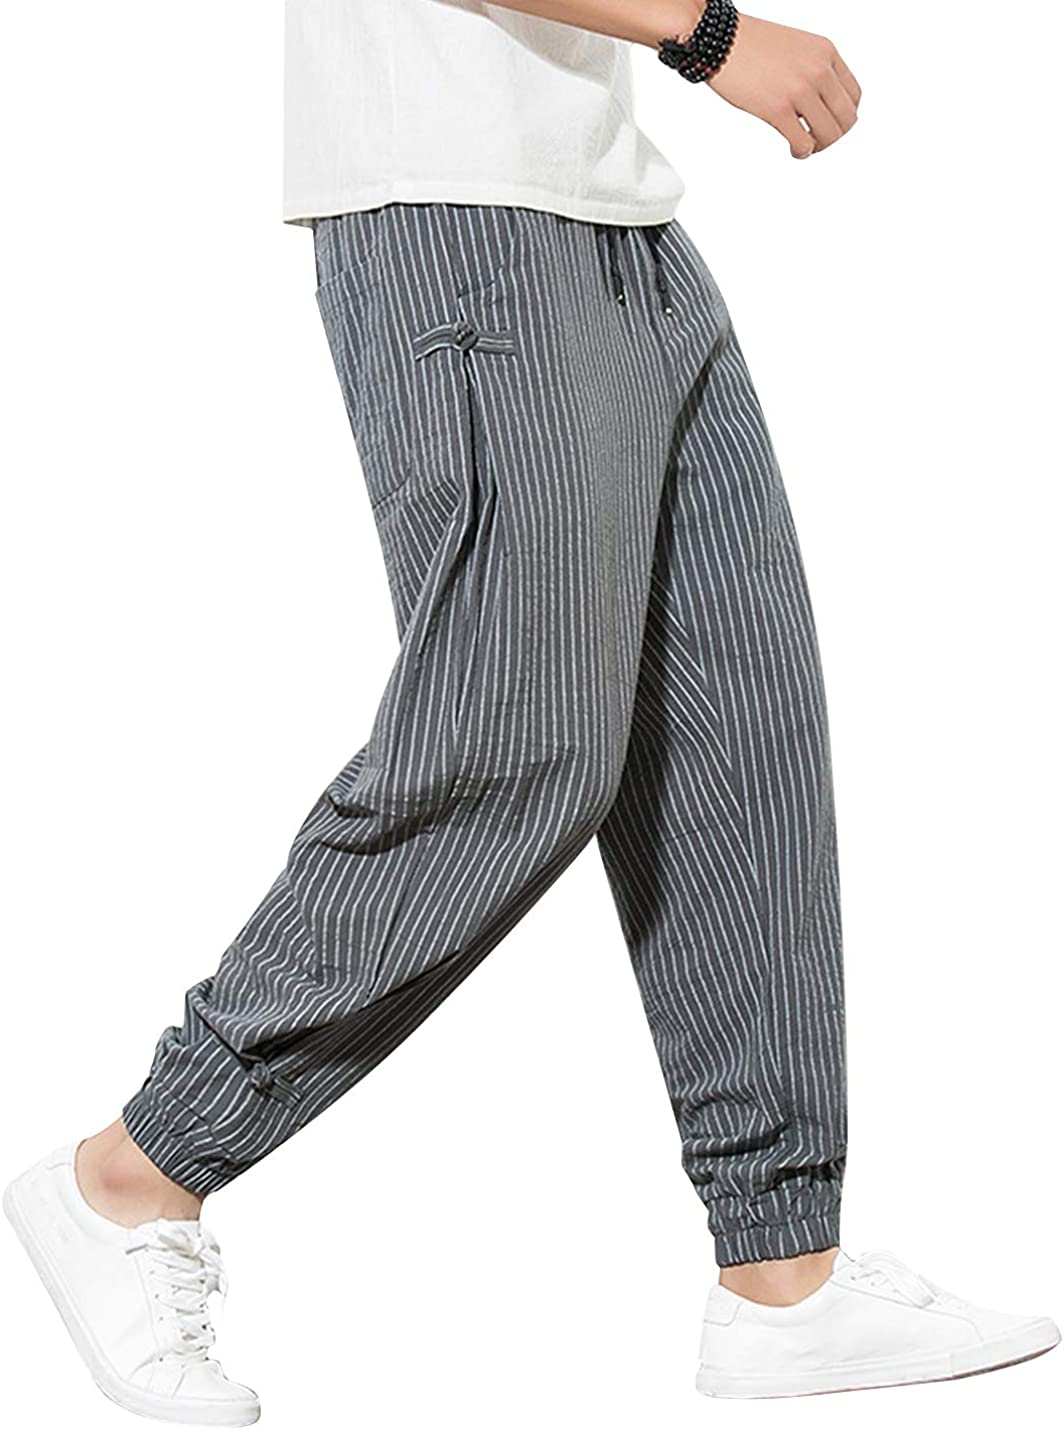 Uaneo Men's Casual Cotton Striped Relaxed Fit Drawstring Waist Jogger Pant(Grey-L)